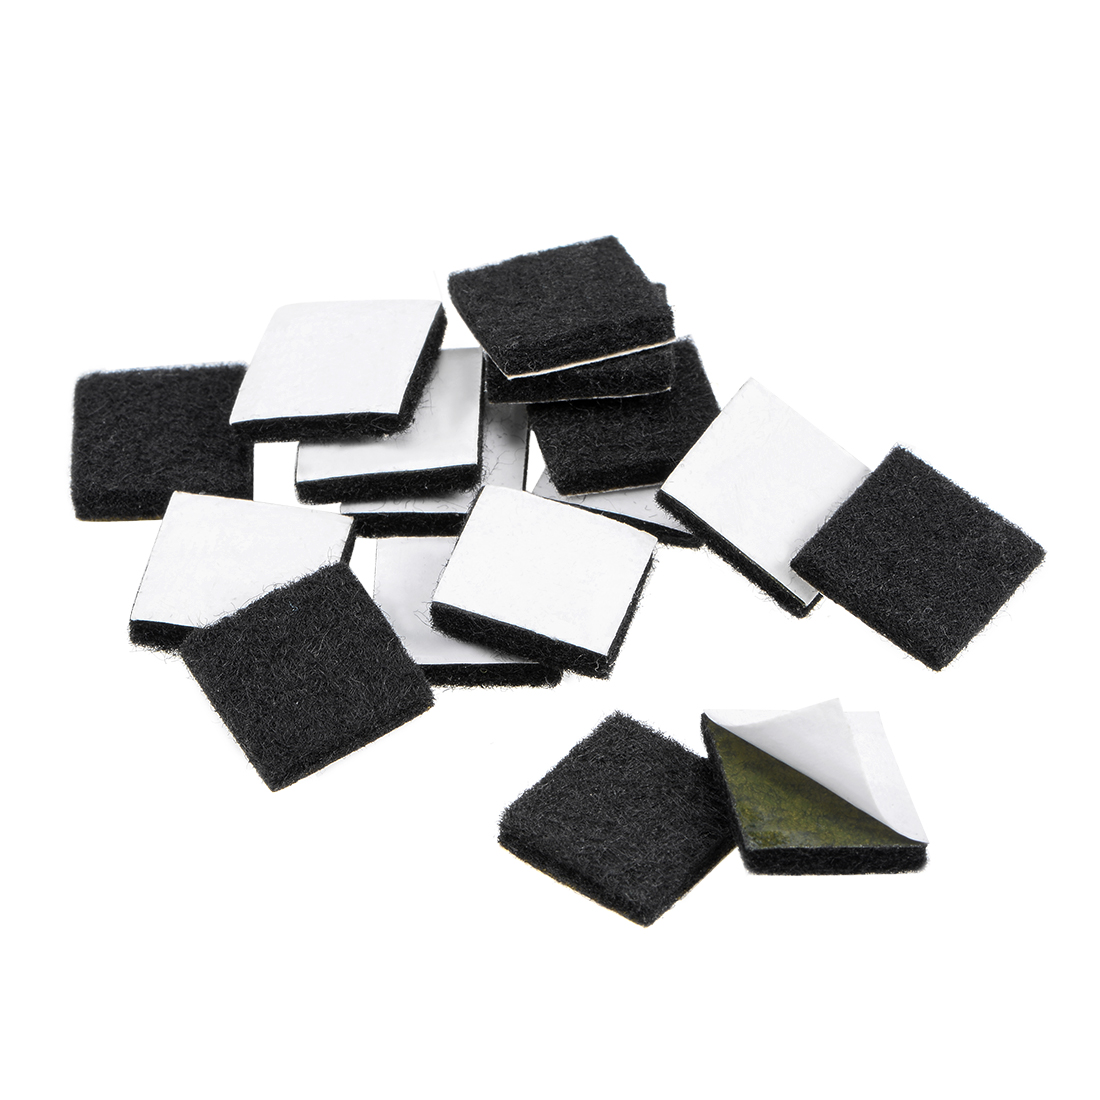 Furniture Pads Adhesive Felt Pads 16mm x 16mm Square 3mm Thick Black 36Pcs